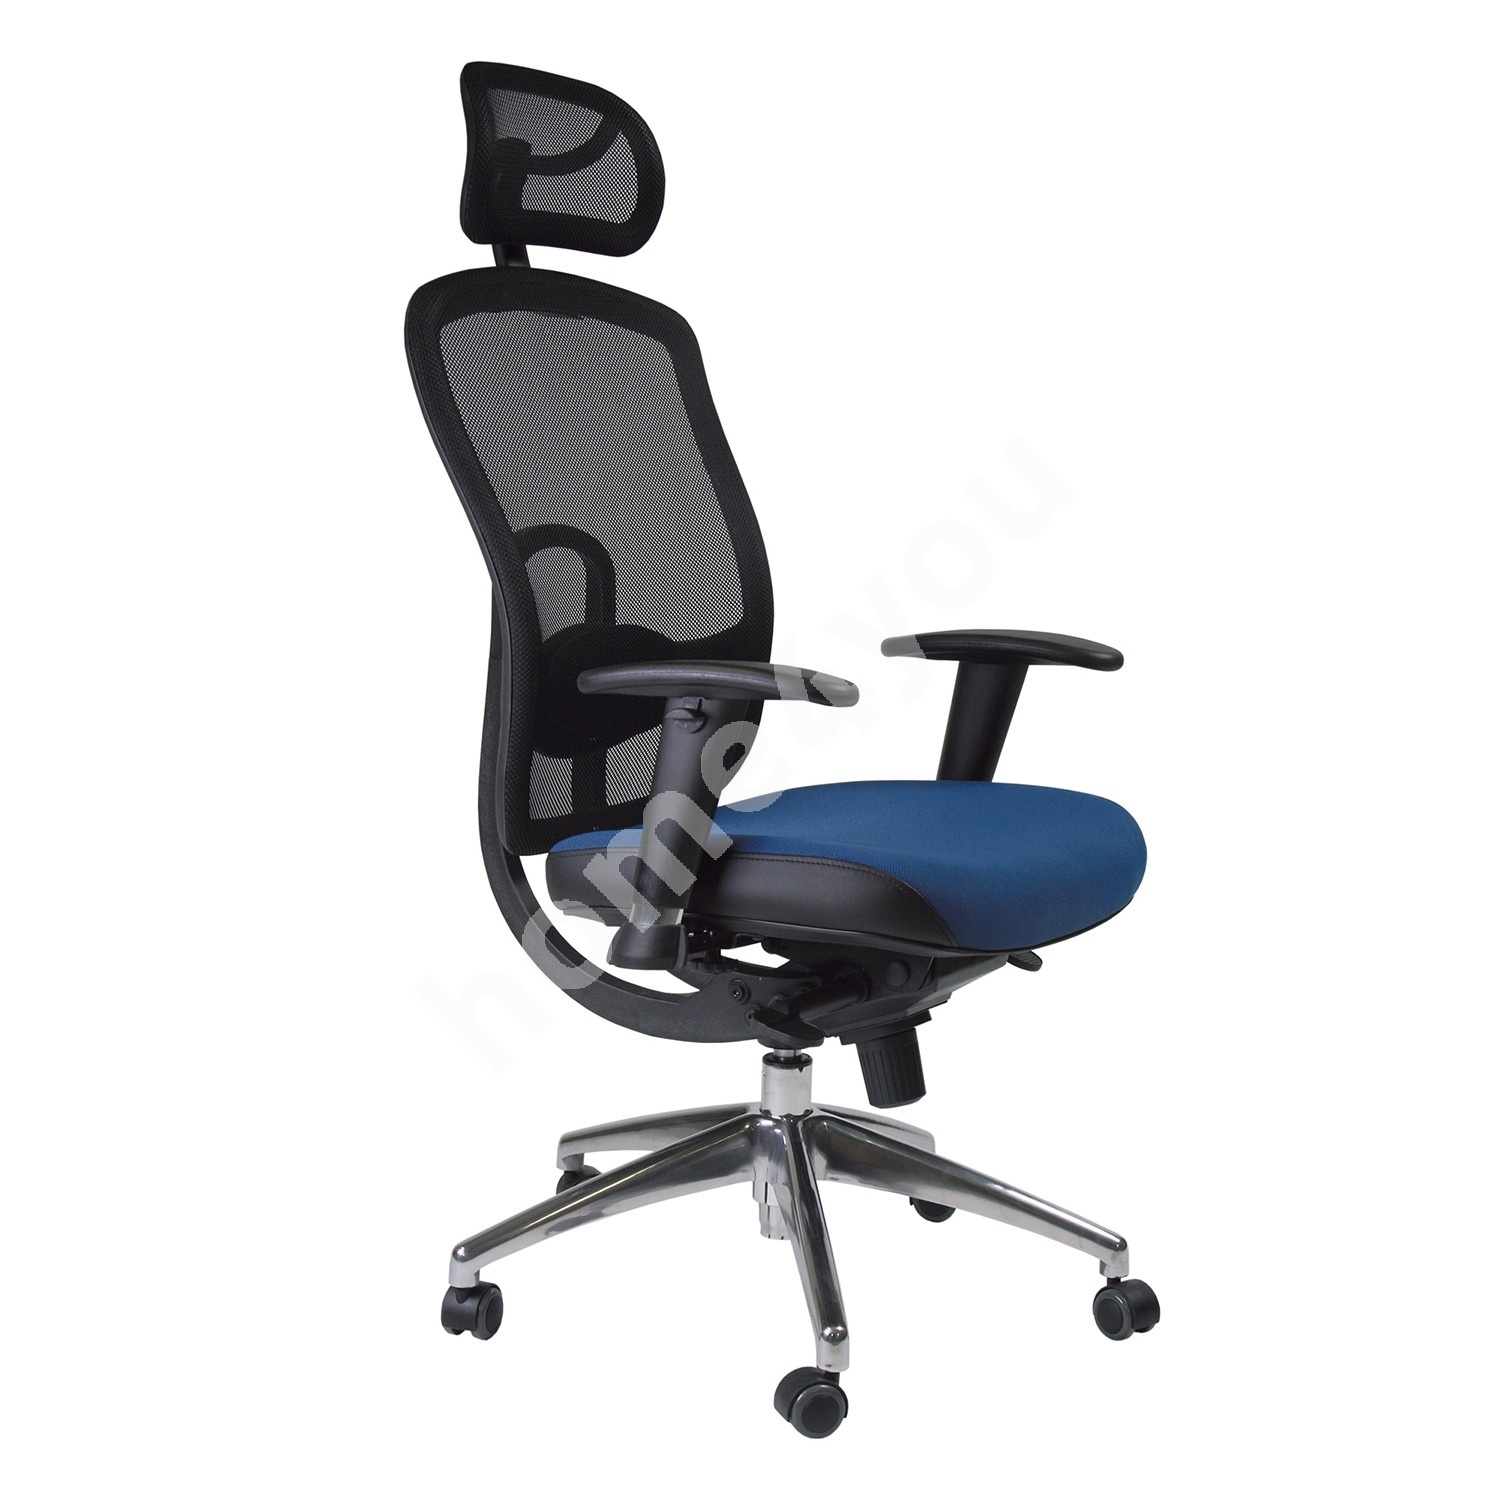 Task chair LUCCA 64xD63,5xH123-131cm, seat: fabric, color: blue